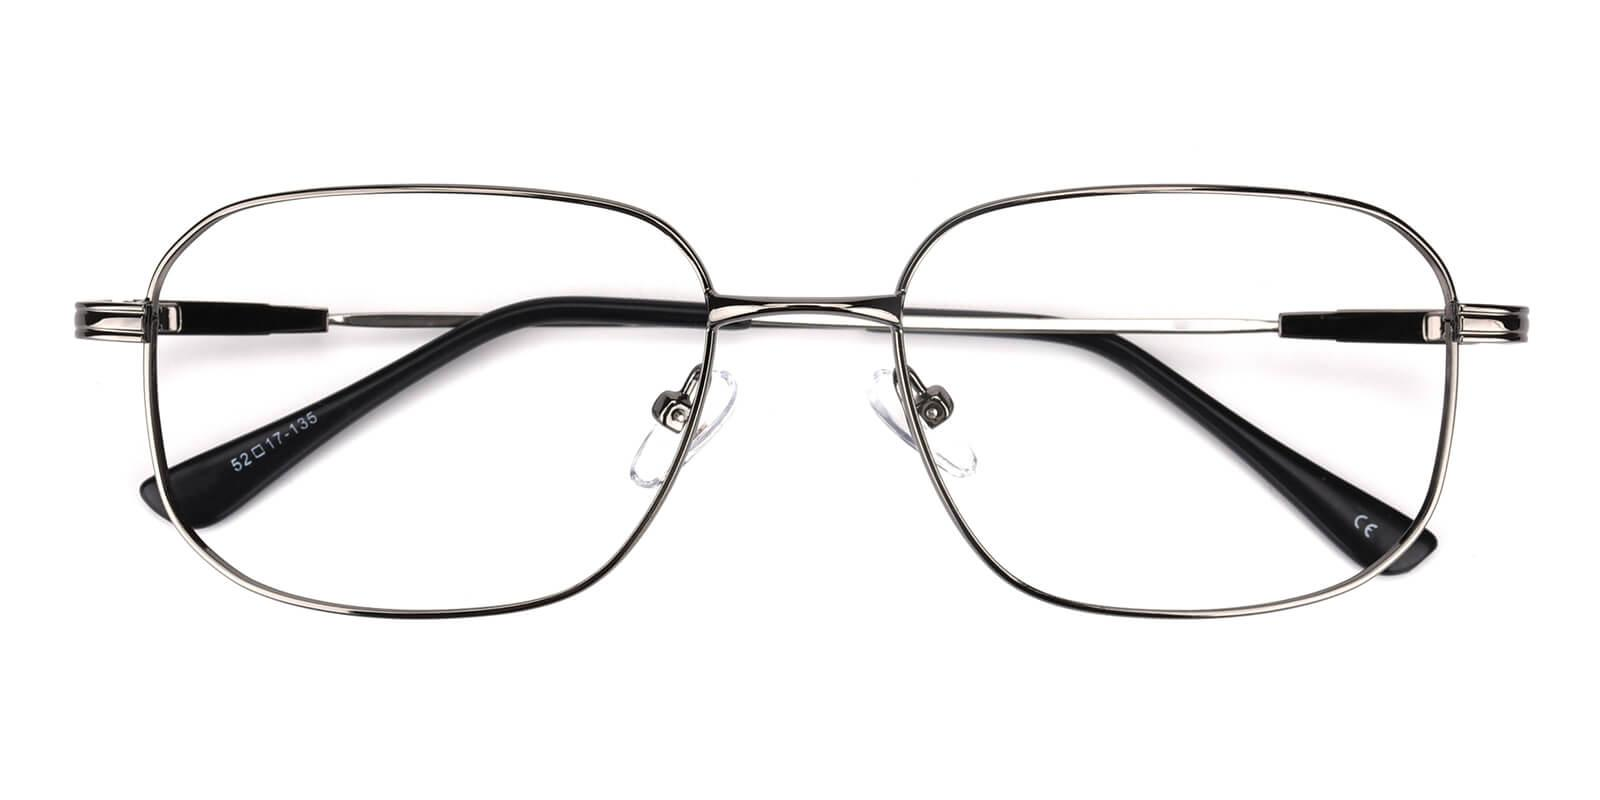 Weston-Gun-Square-Metal-Eyeglasses-detail